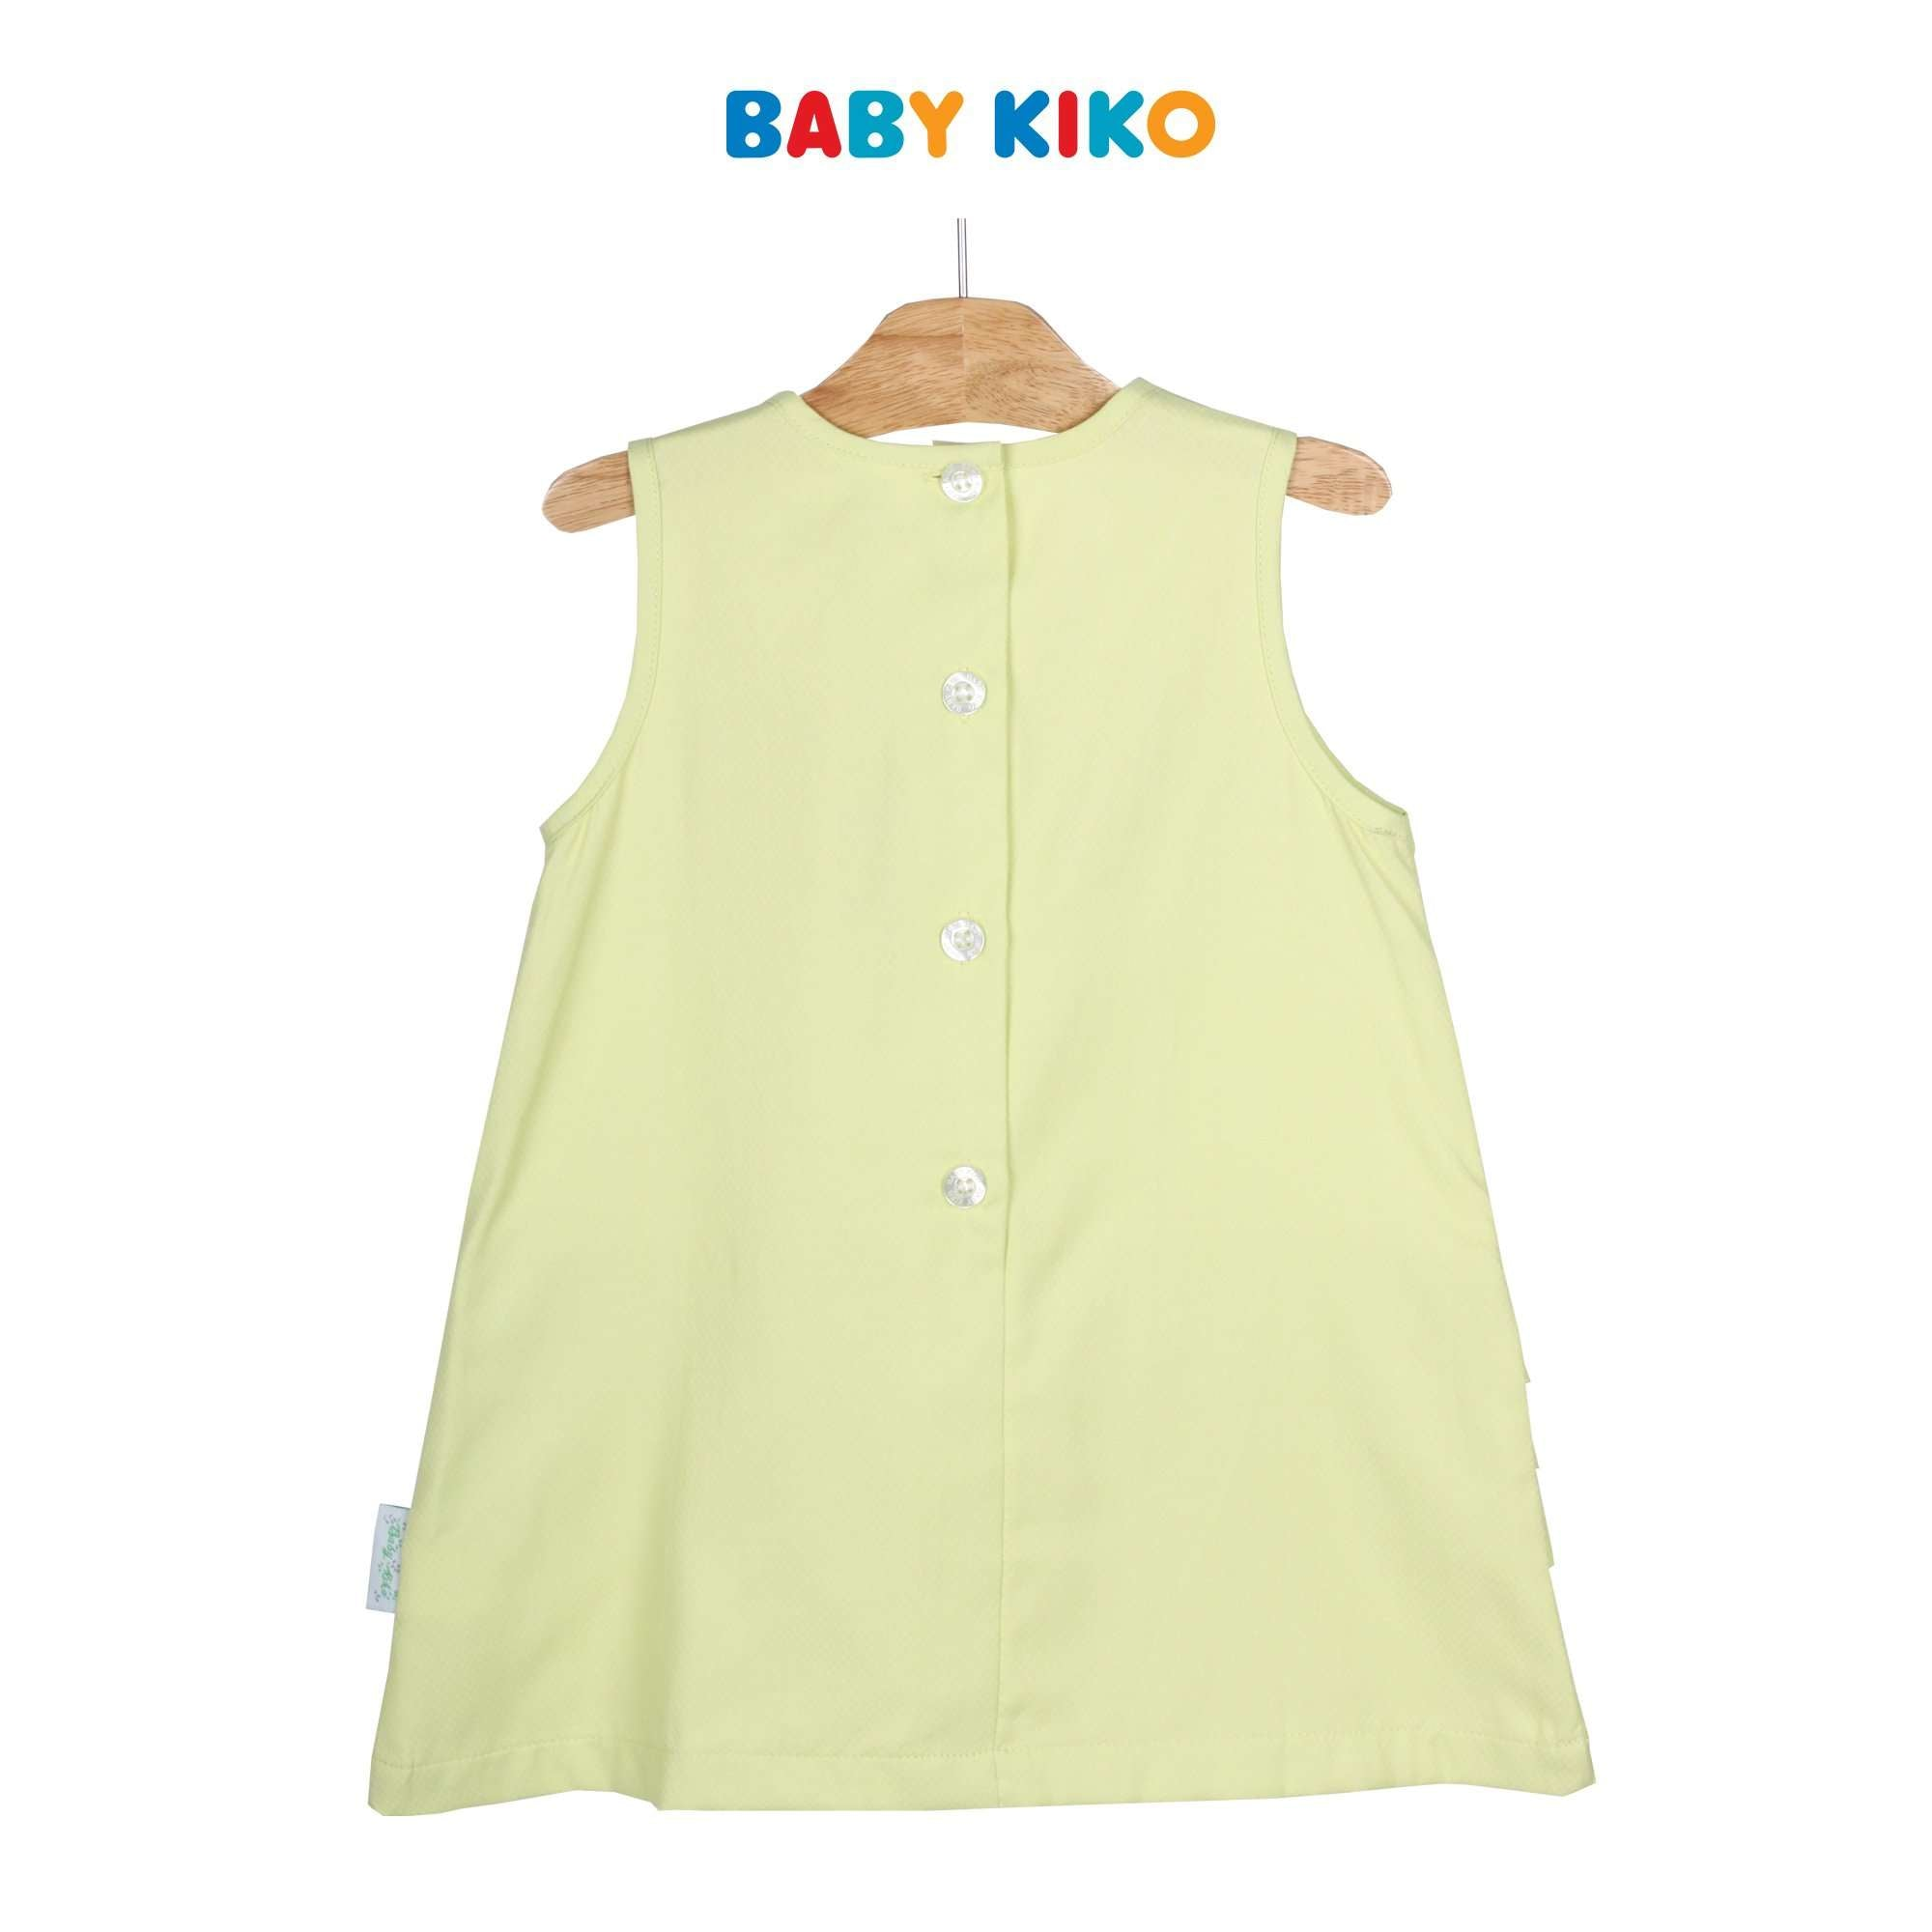 Baby KIKO Toddler Girl Sleeveless Dress - Green 315139-311 : Buy Baby KIKO online at CMG.MY